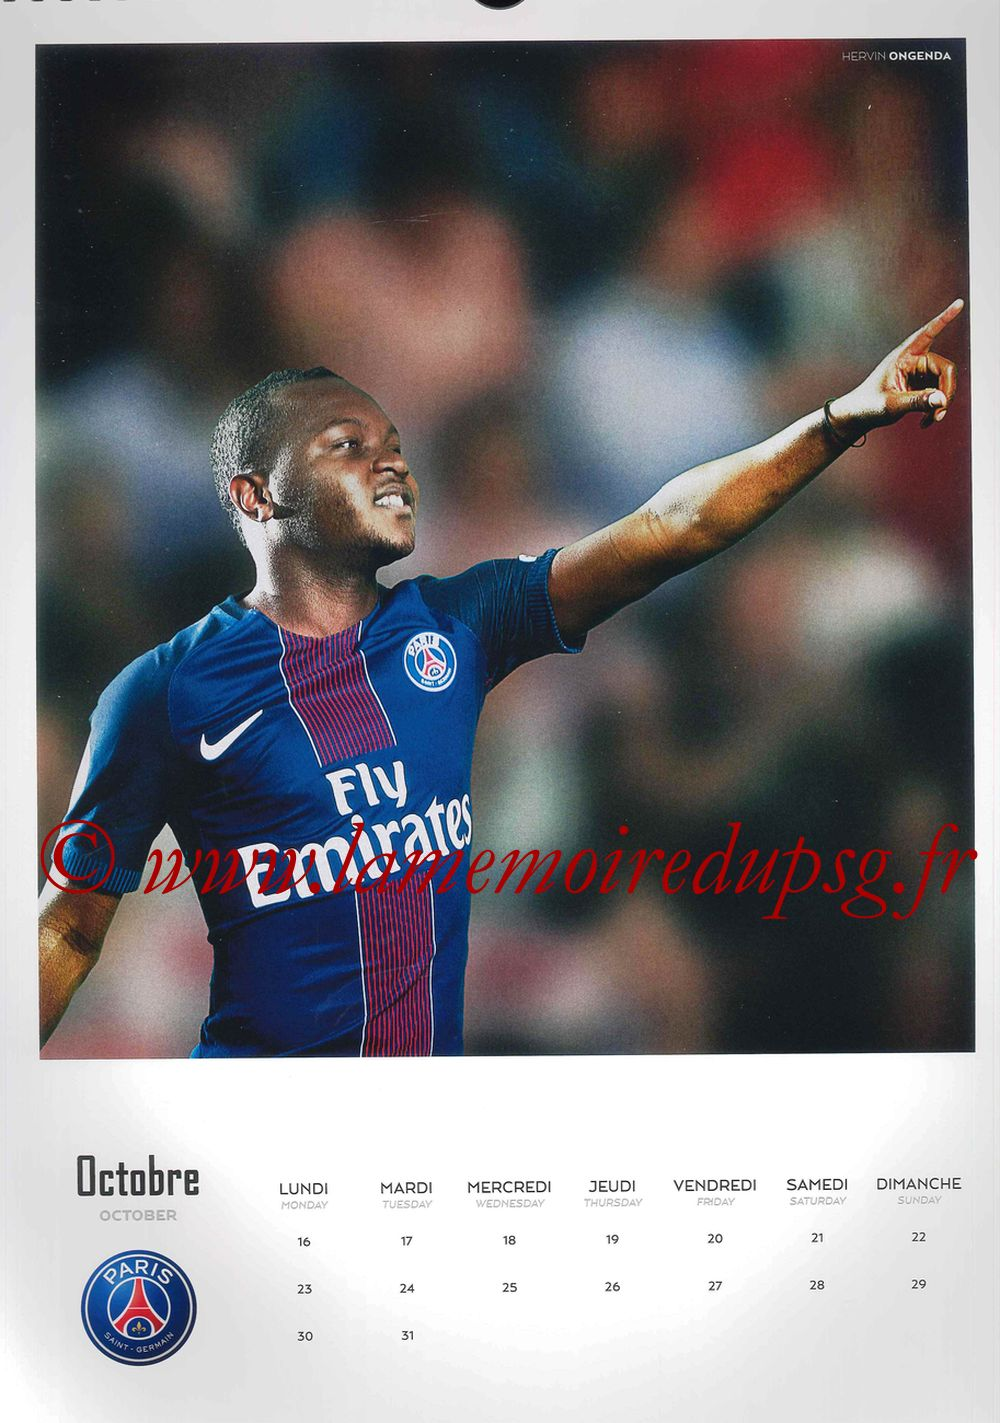 Calendrier PSG 2017 - Page 20 - Hervin ONGENDA